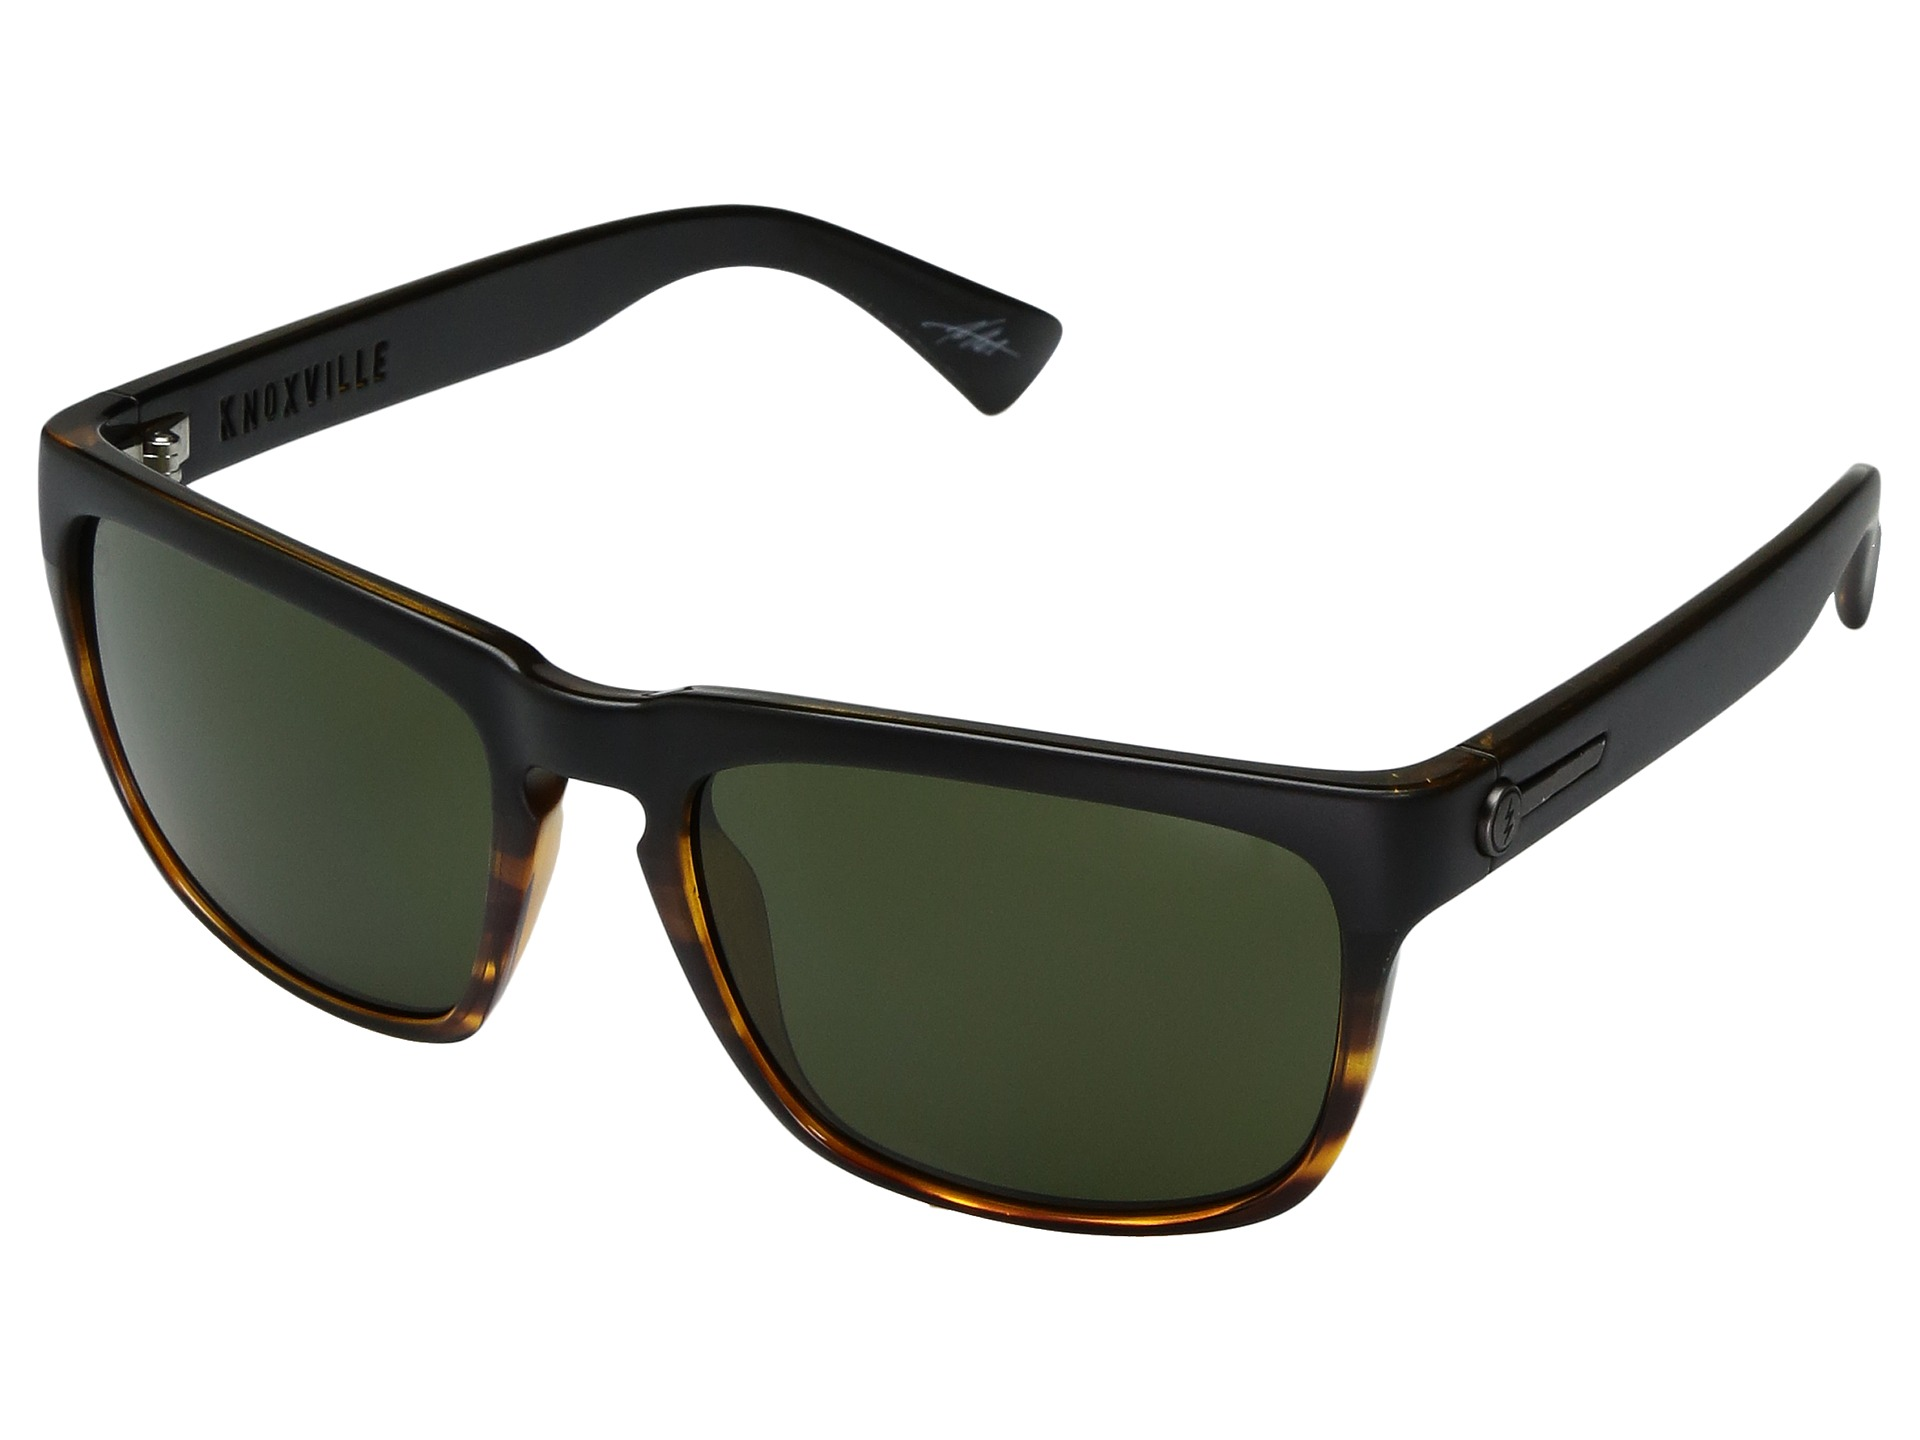 Electric Eyewear Knoxville Polarized at Zappos.com